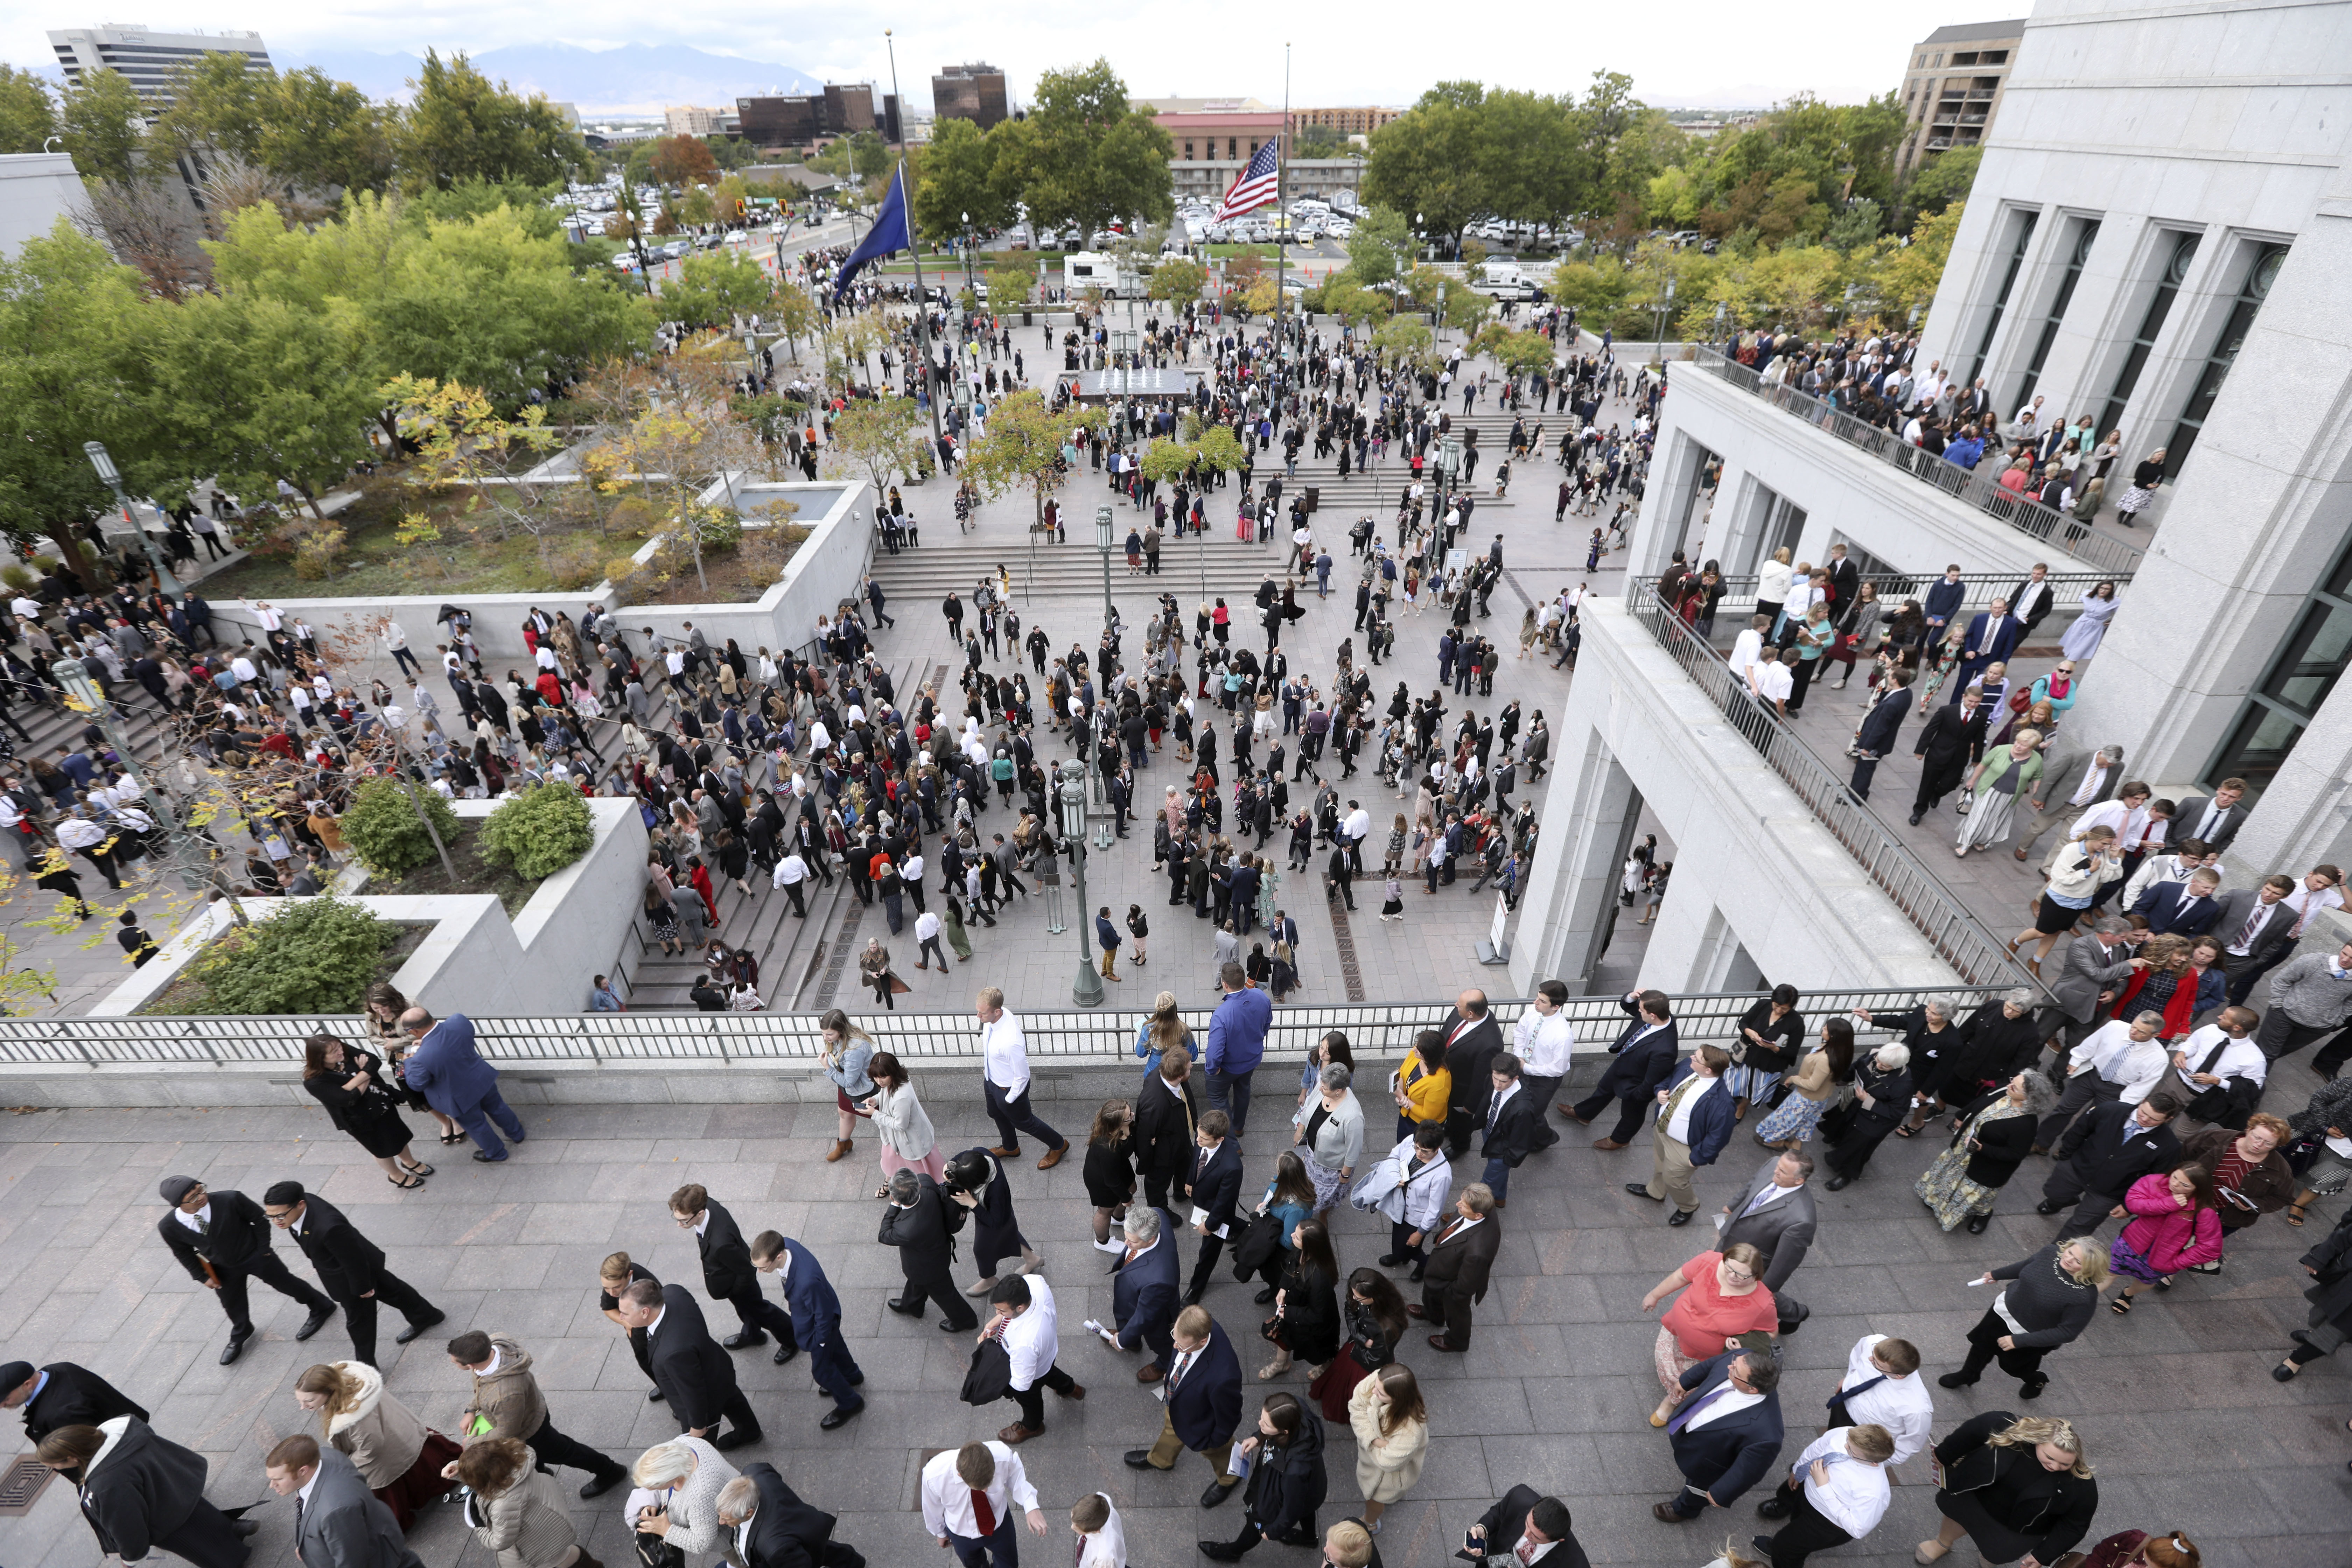 Conferencegoers leave the Sunday morning session of the 188th Semiannual General Conference of The Church of Jesus Christ of Latter-day Saints held in the Conference Center in downtown Salt Lake City on Sunday, Oct. 7, 2018.